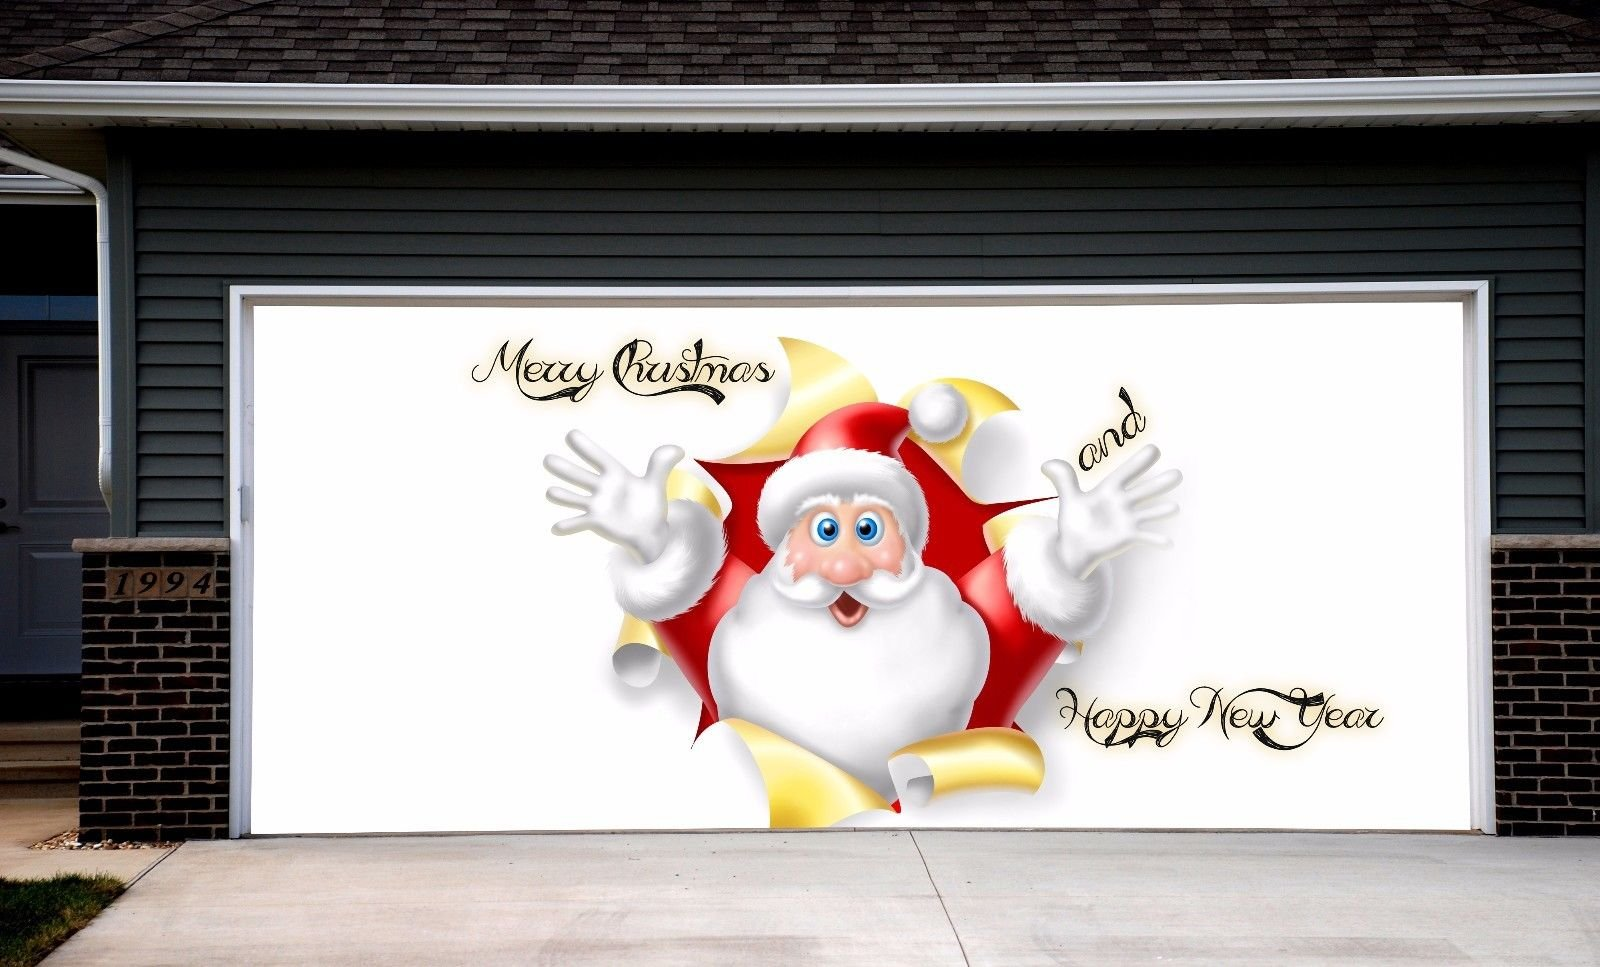 Christmas Garage Door Covers Banners Outdoor Holiday Full Color Santa Claus Merry Christmas Decorations Billboard for 2 Car Garage Door House Art Murals size 82x188 inches DAV31